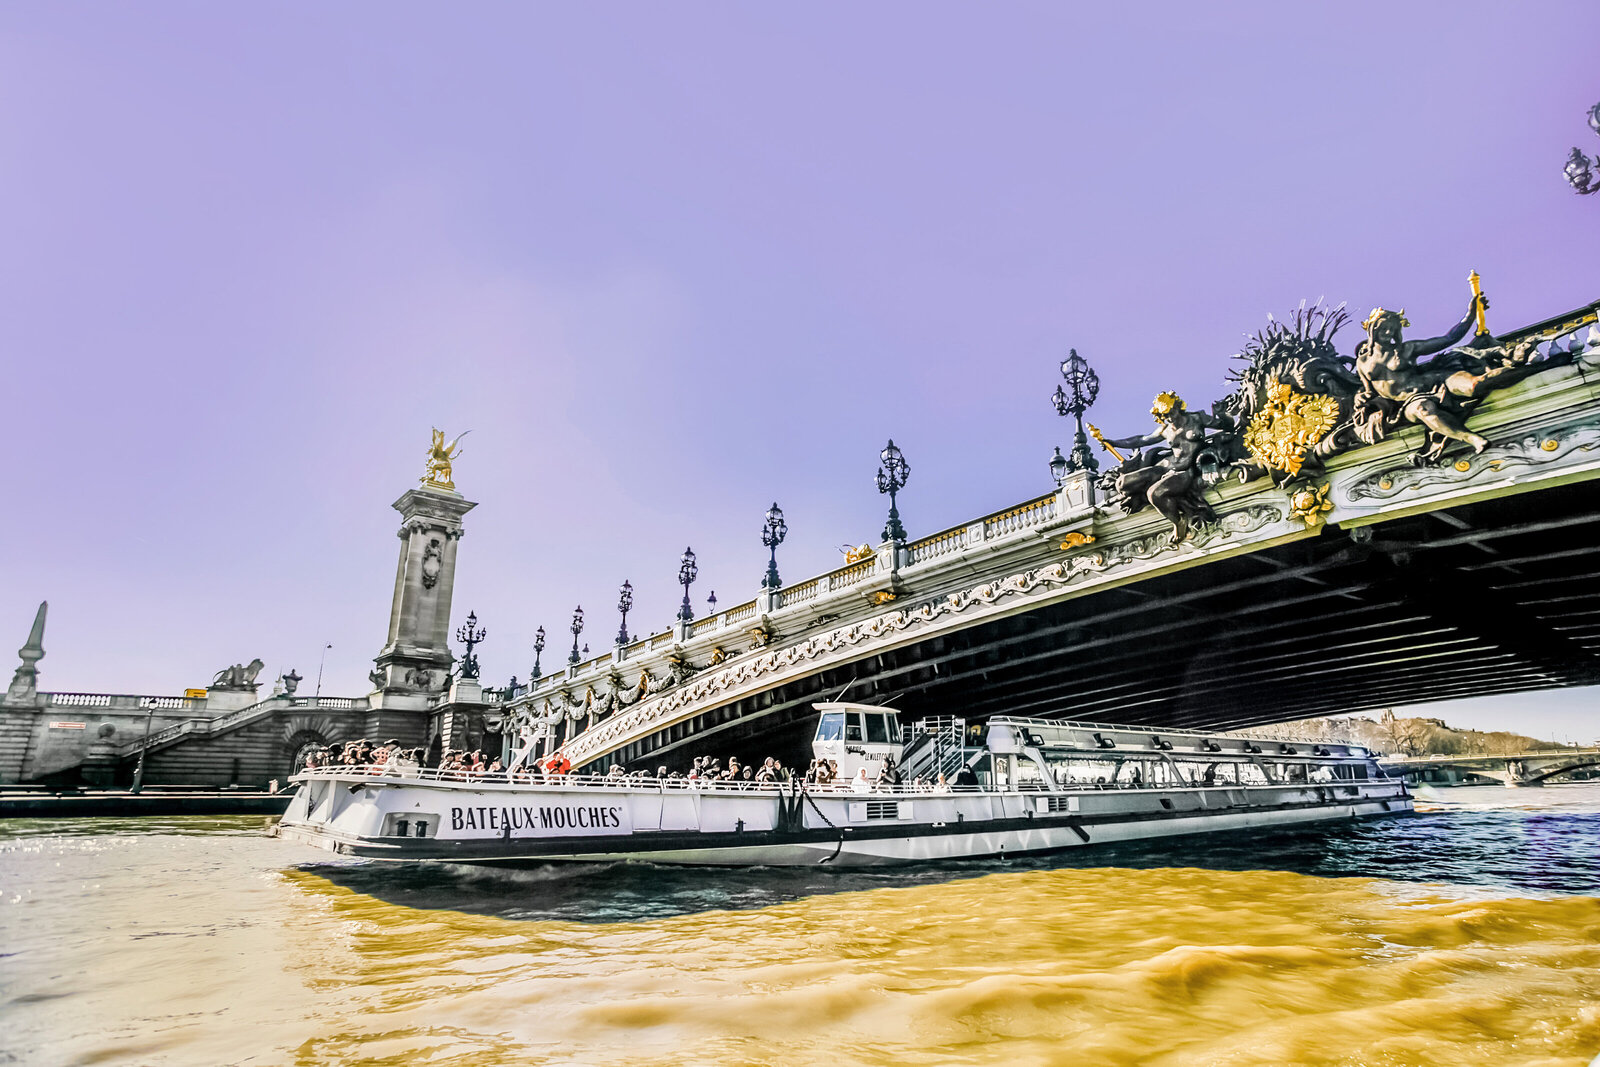 076-KBP - Seine-River-Boat-Paris-France